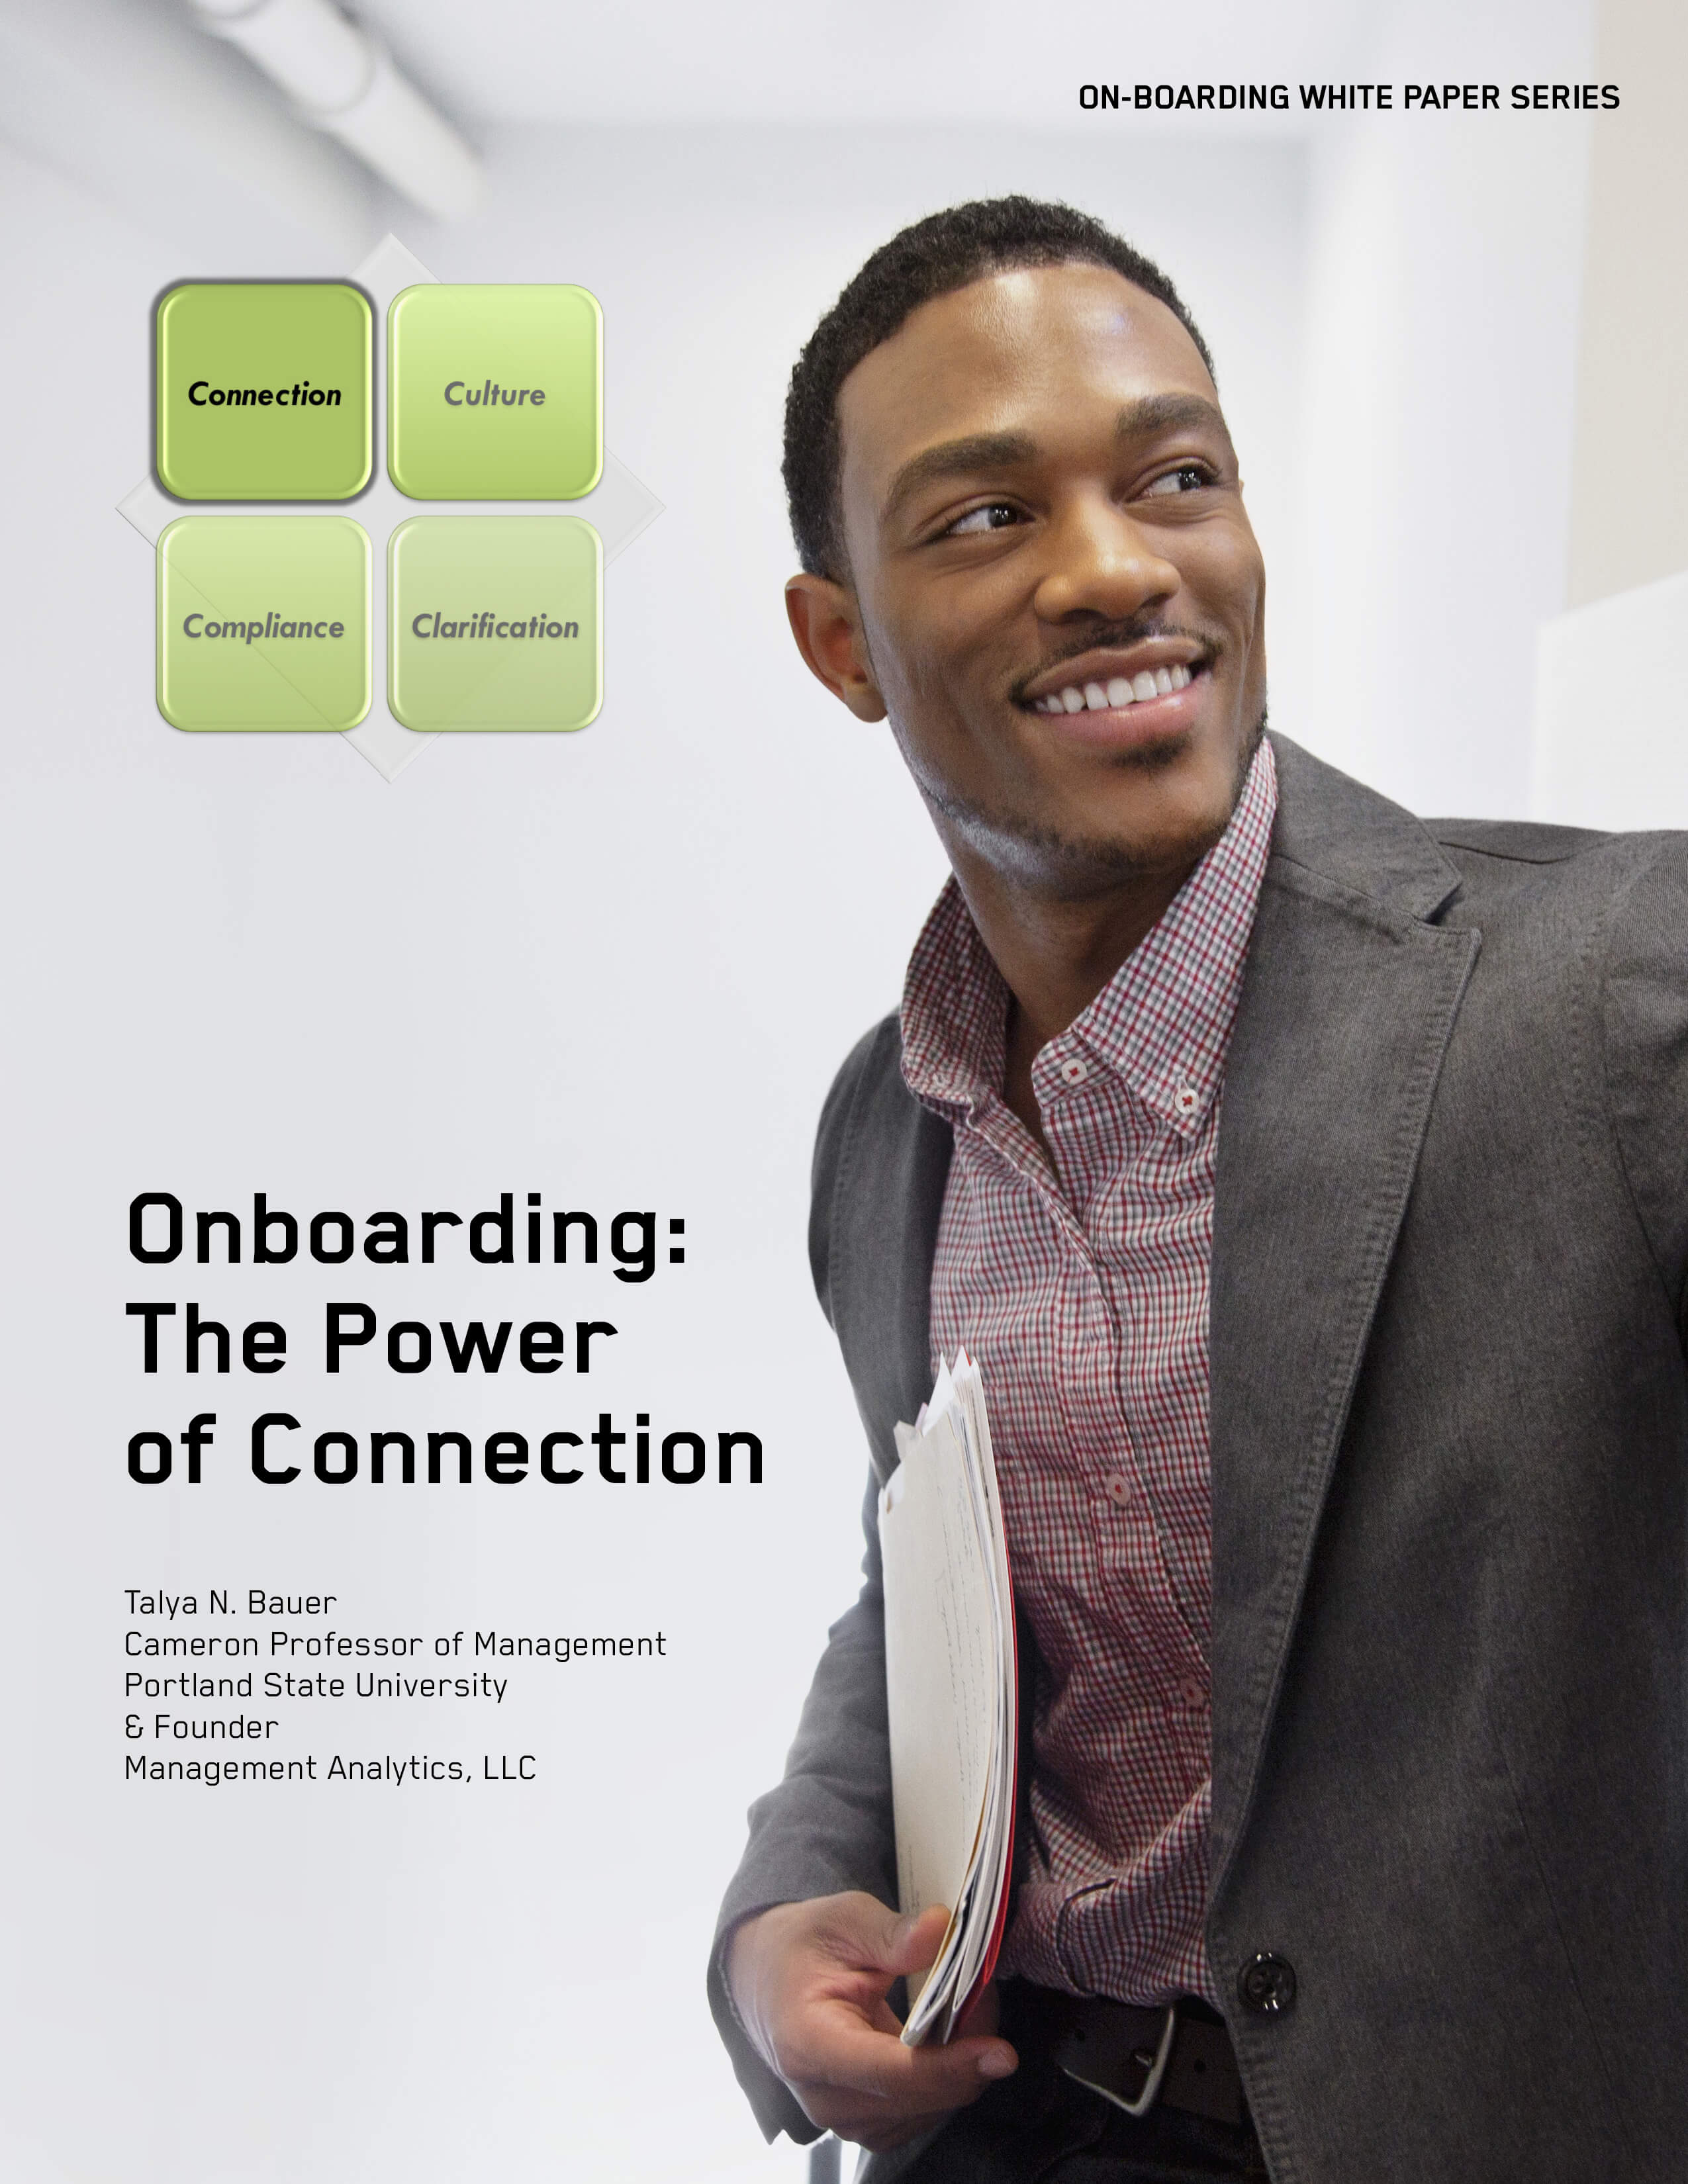 Onboarding - The Power of Connection